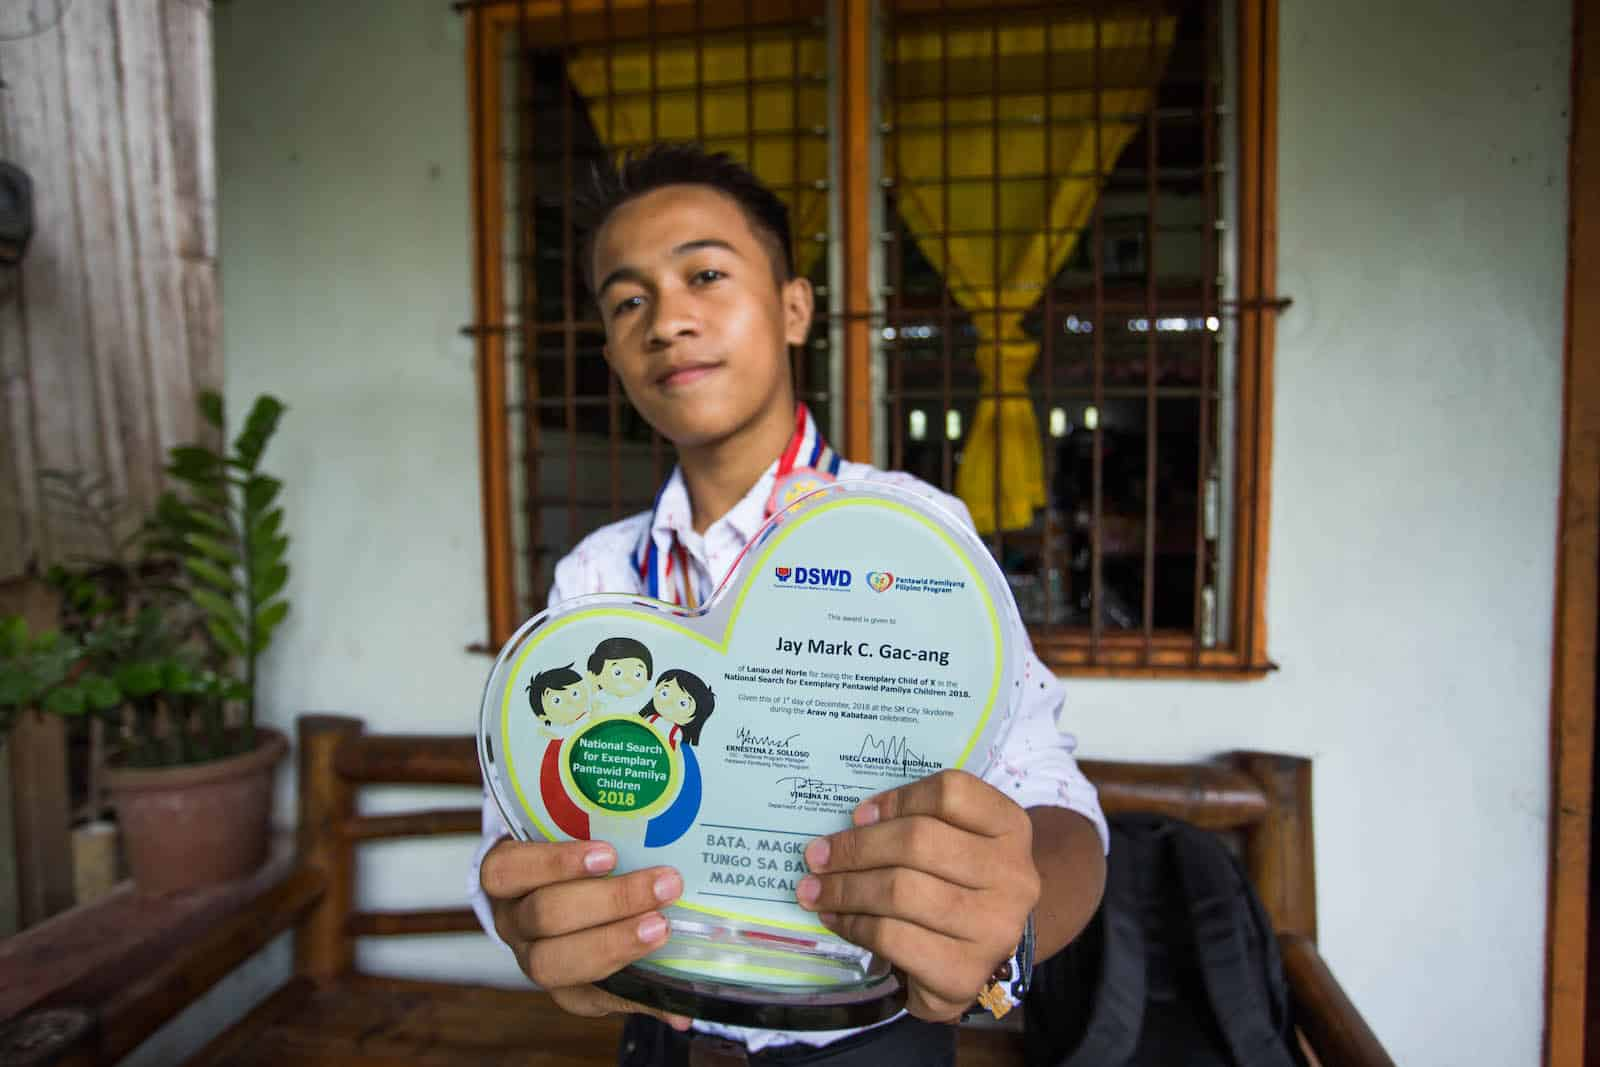 A teen boy stands outside a window, holding an award plaque for the Most Excellent Child in the Philippines.